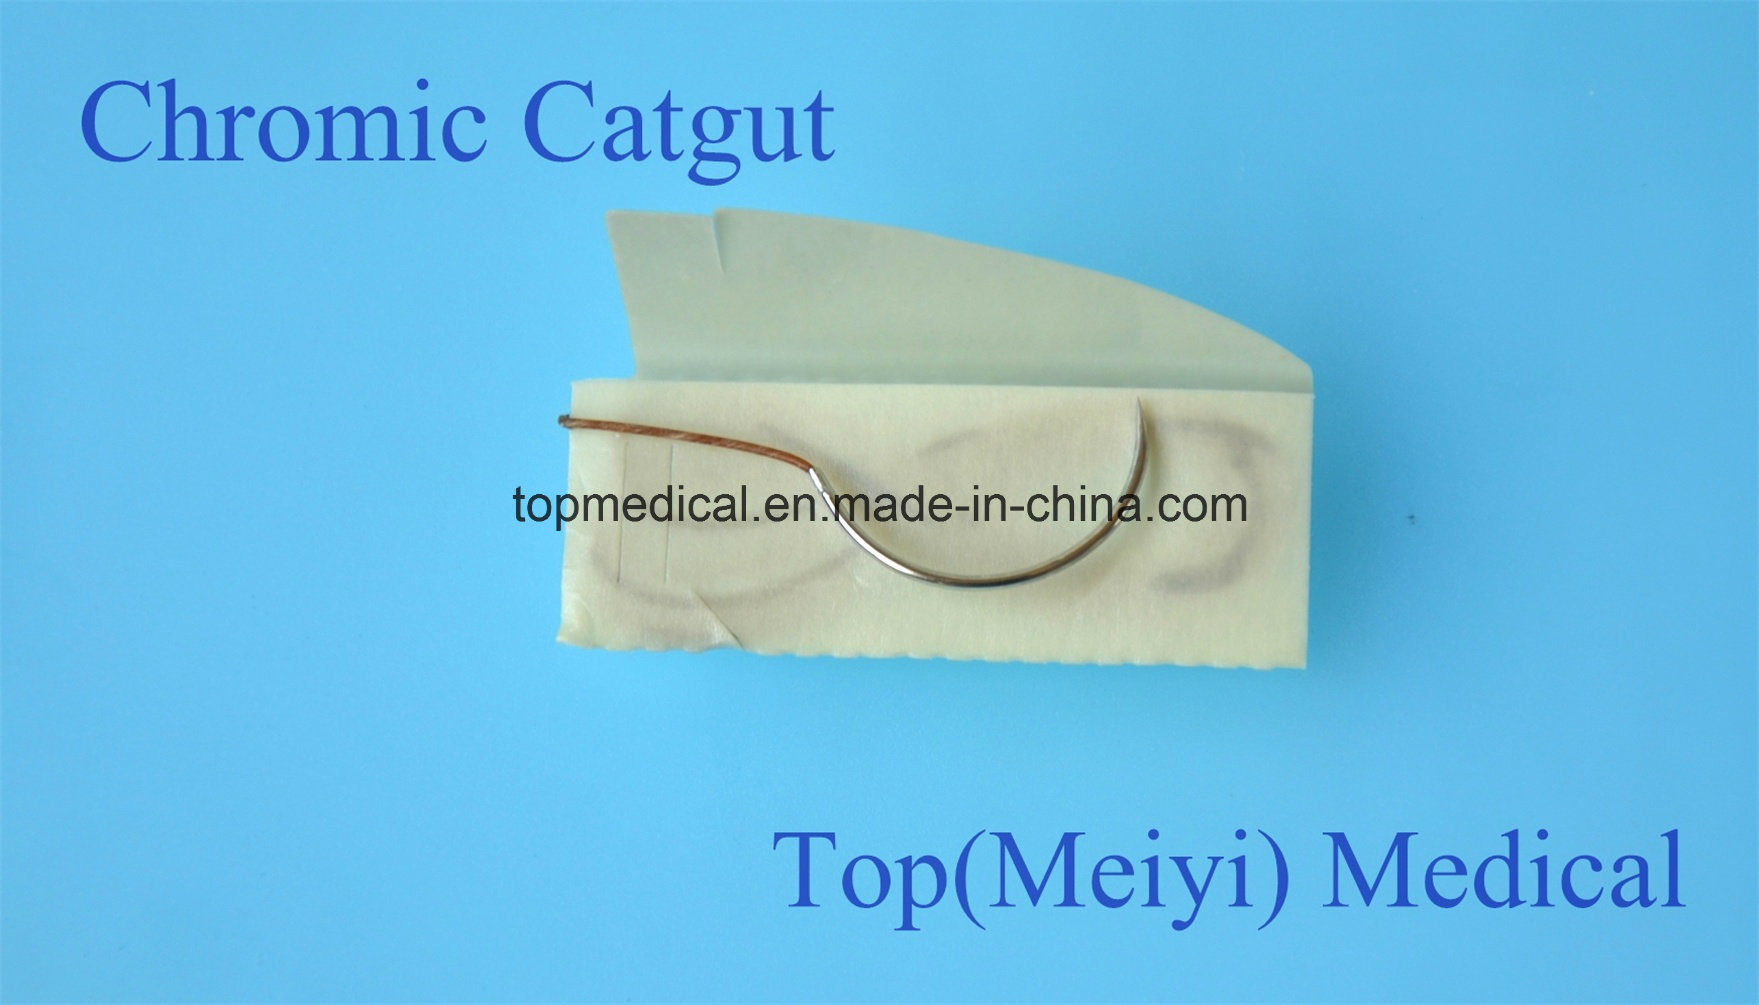 Surgical Suture Plain Catgut Chromic Catgut